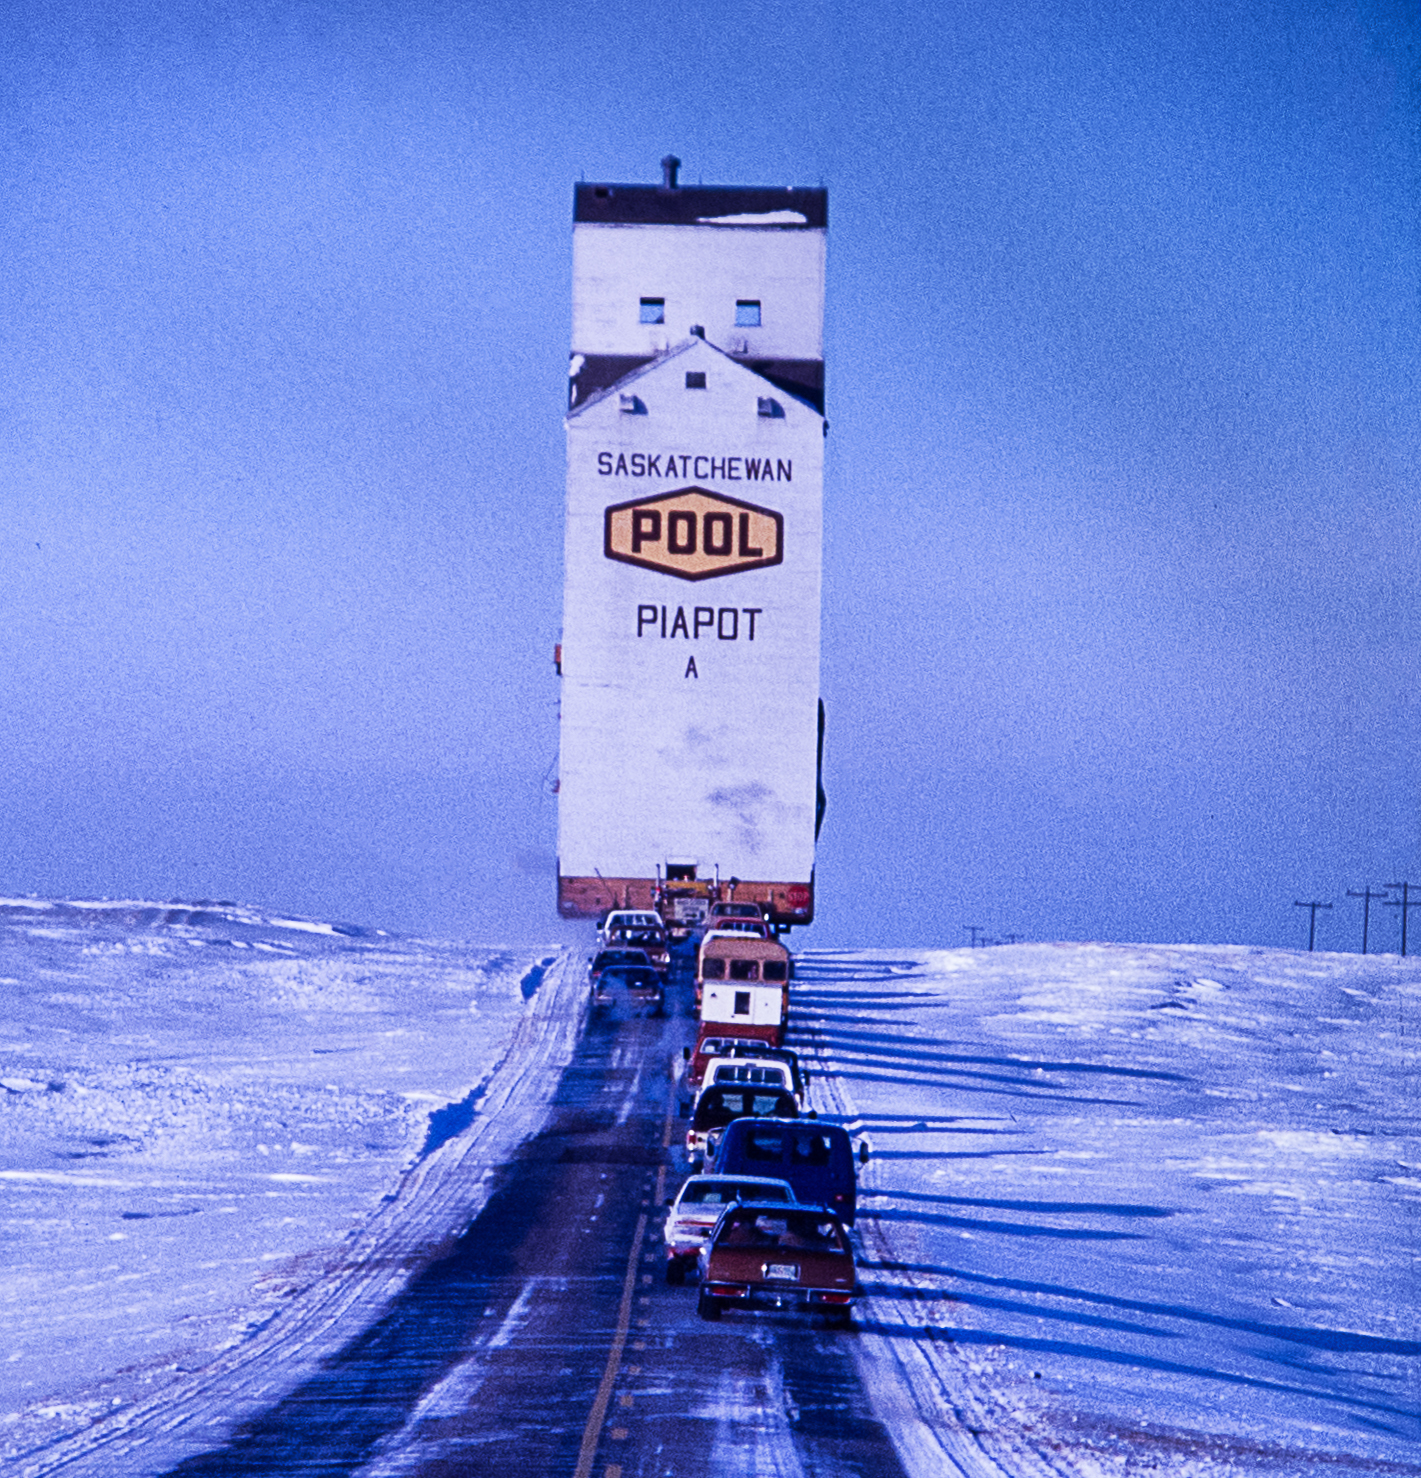 I took these photos in January, 1979. On a road trip in southwestern Saskatchewan (on highway 21 between Maple Creek and Fox Valley) I came across this unusual scene. Once an icon of the prairie, the grain elevator has nearly been eliminated, but seeing one being moved on a very cold day in winter will not likely happen again. It was a bitterly cold minus 30, just as an aside.